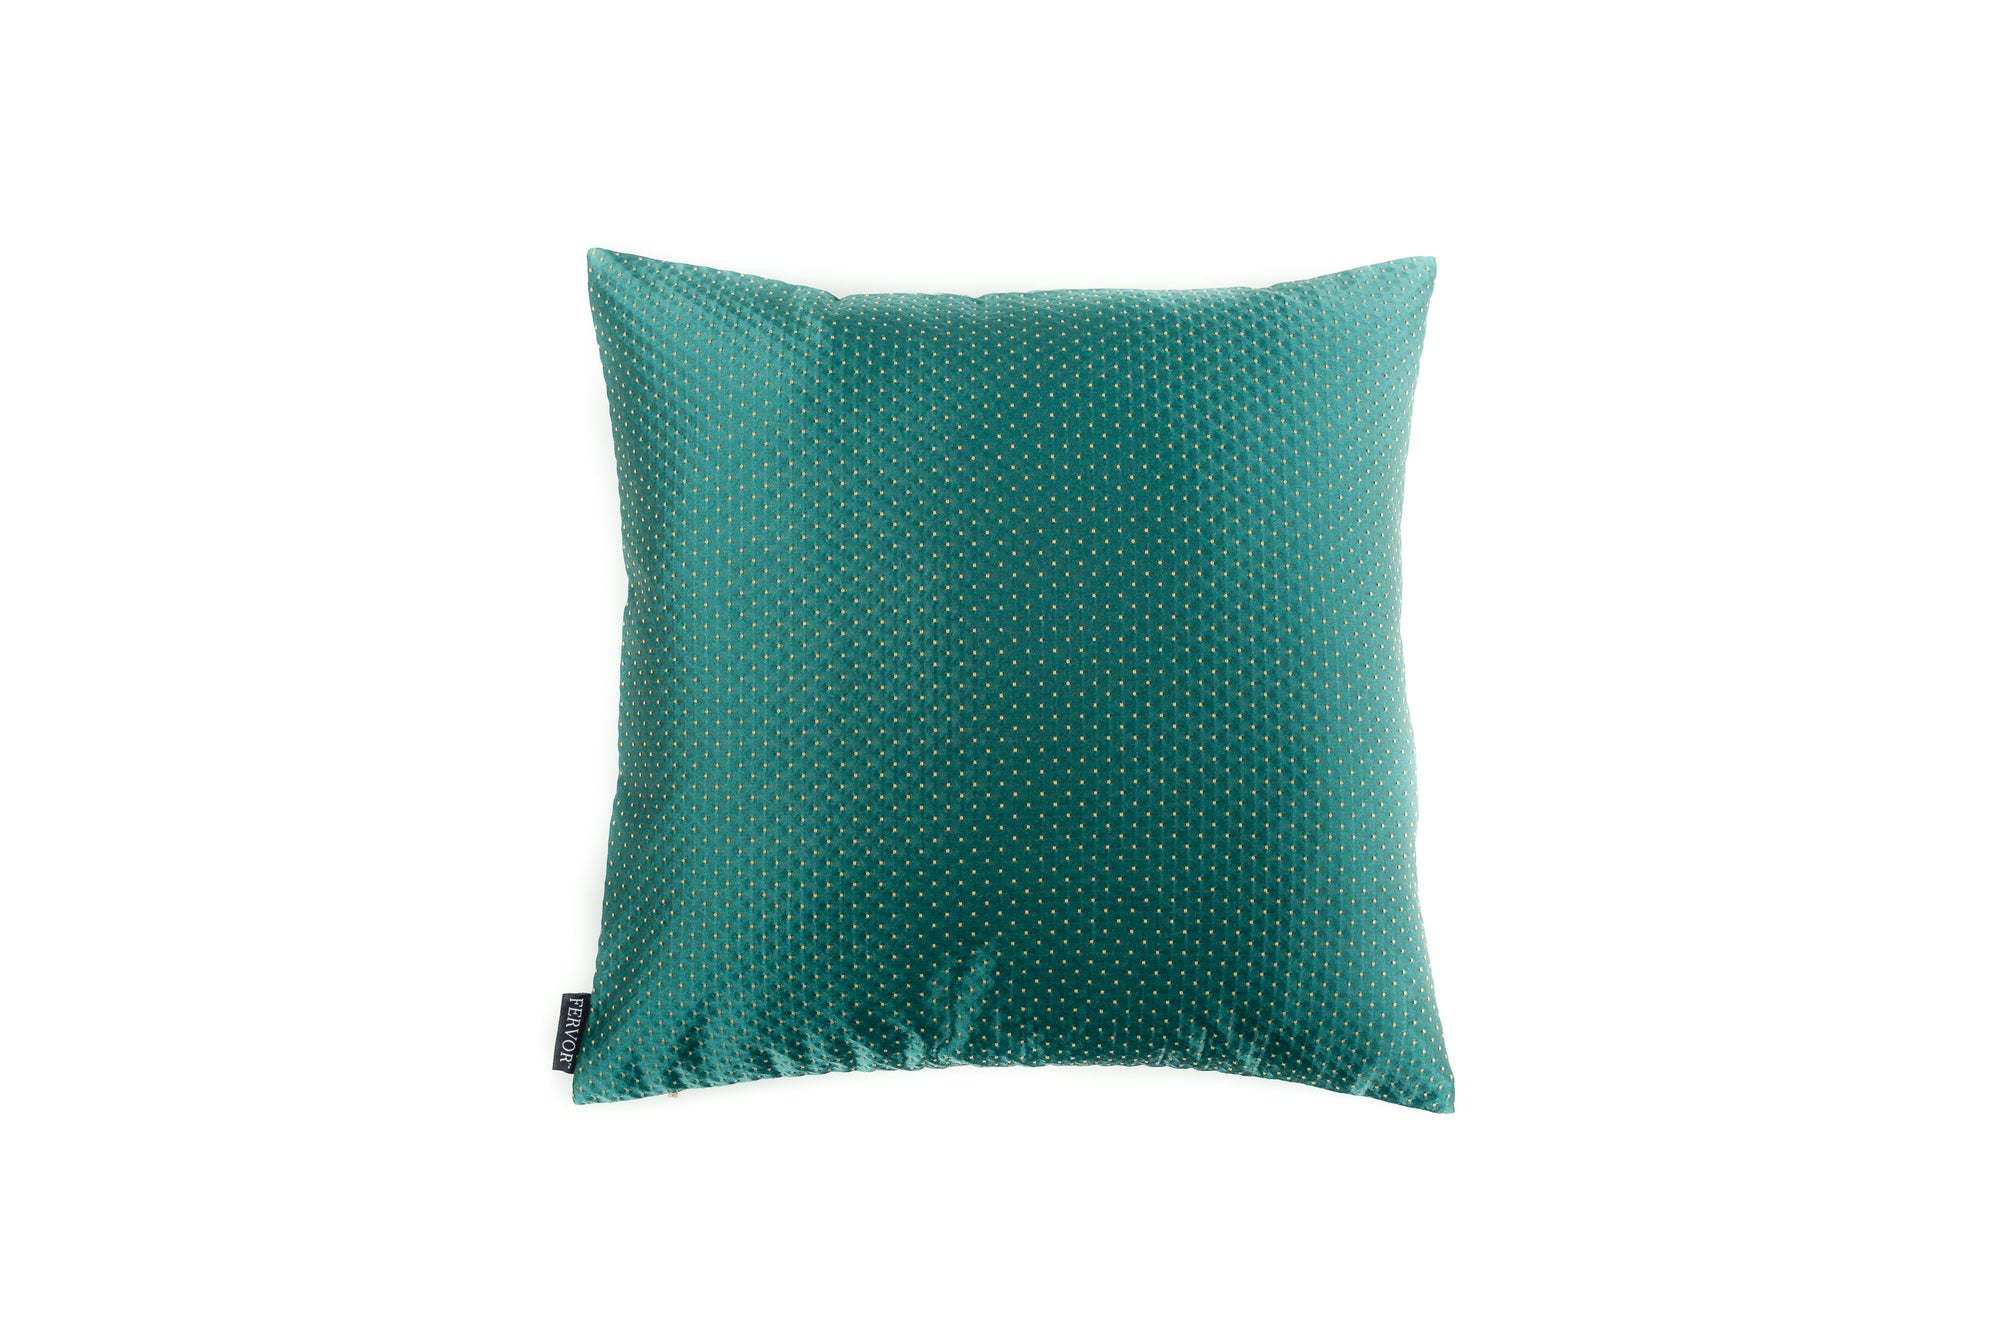 Cushion Gigi Dotty Rich Duck Egg - Fervor + Hue